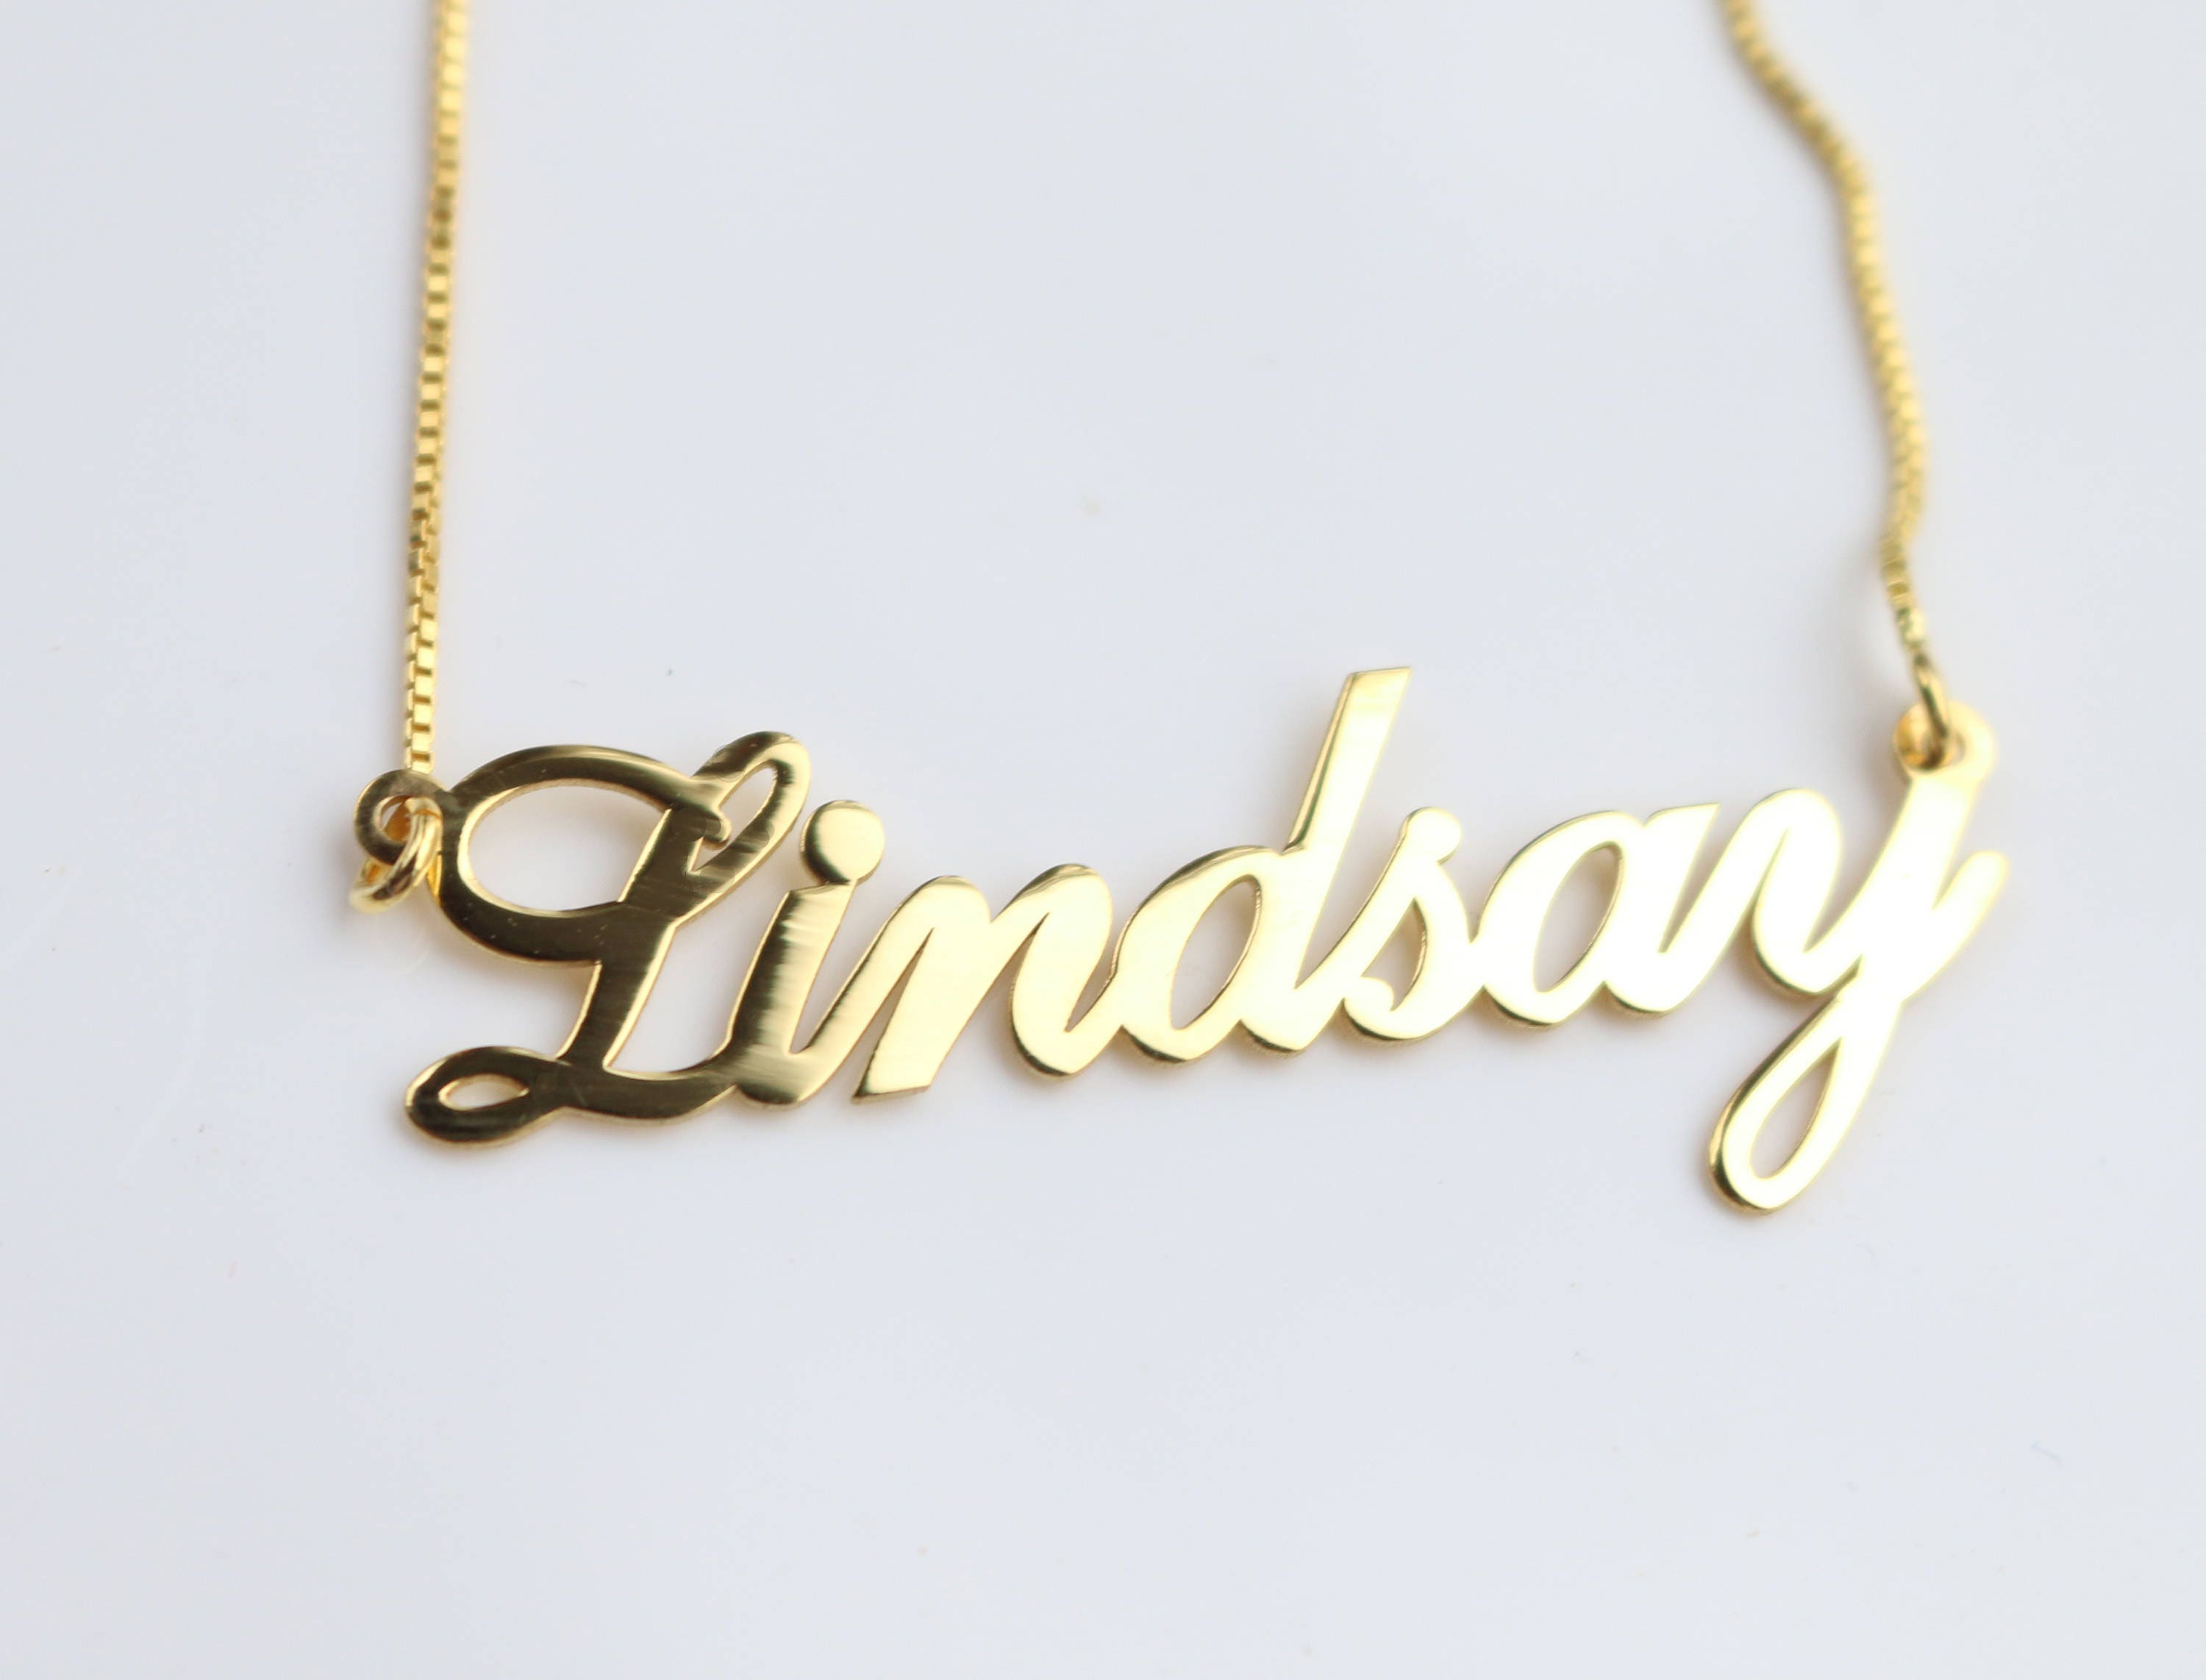 listing plated name personalized necklace zoom fullxfull hk iydh en chains il gold